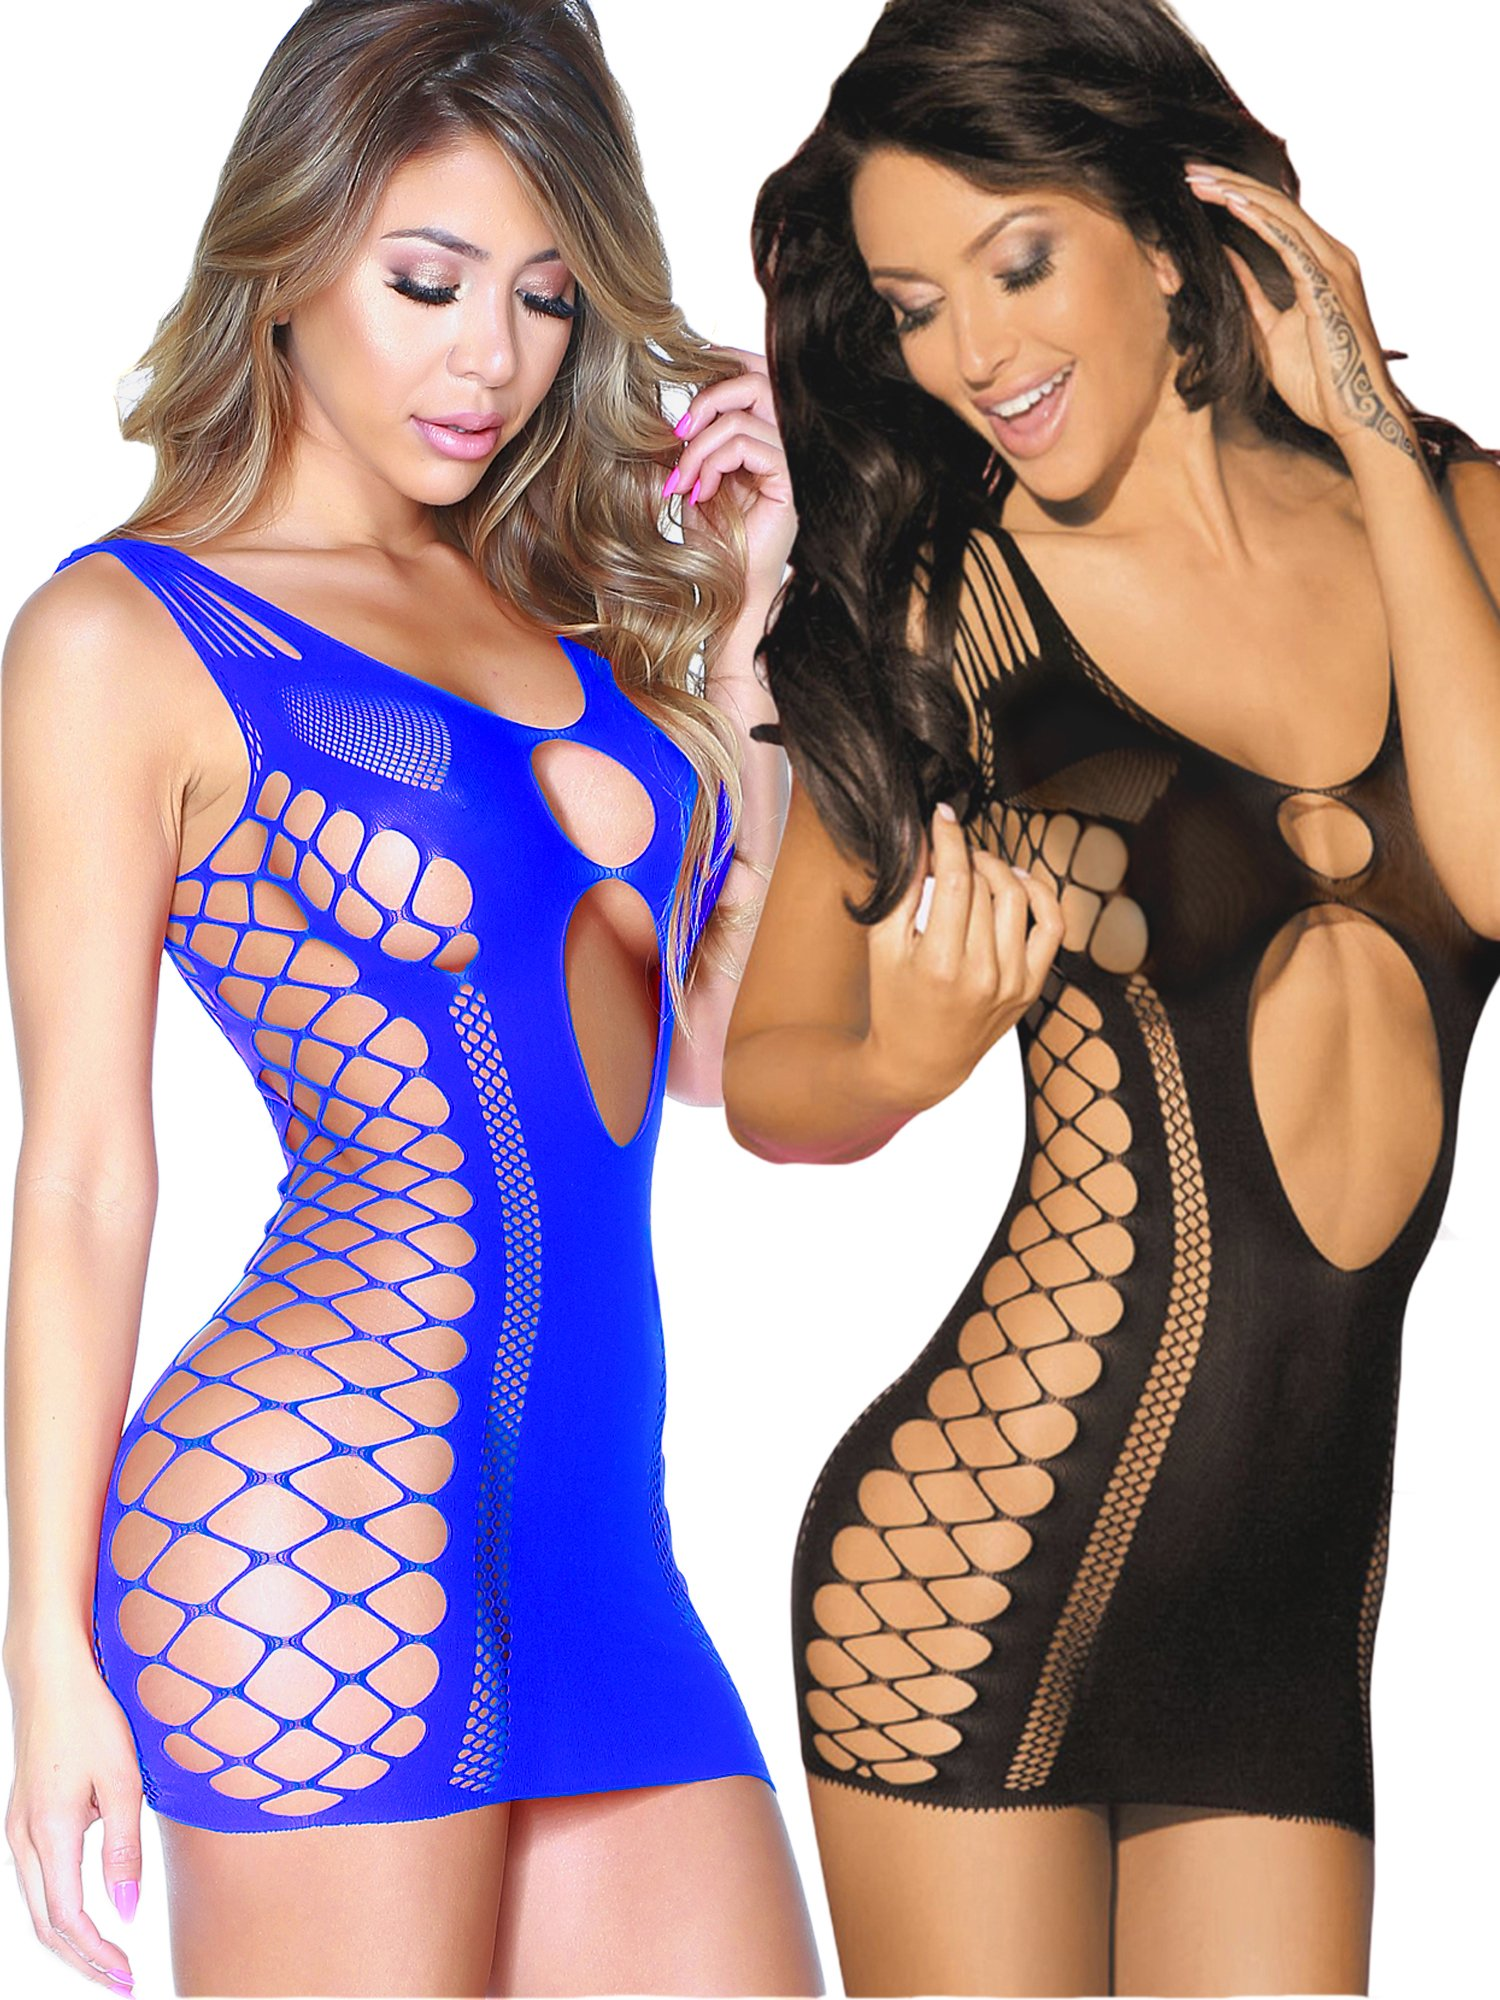 Beauty's Love Seamless Cut Out Fishnet Mini Dresses Chemise Lingerie for Women for Sex (Blueblack)